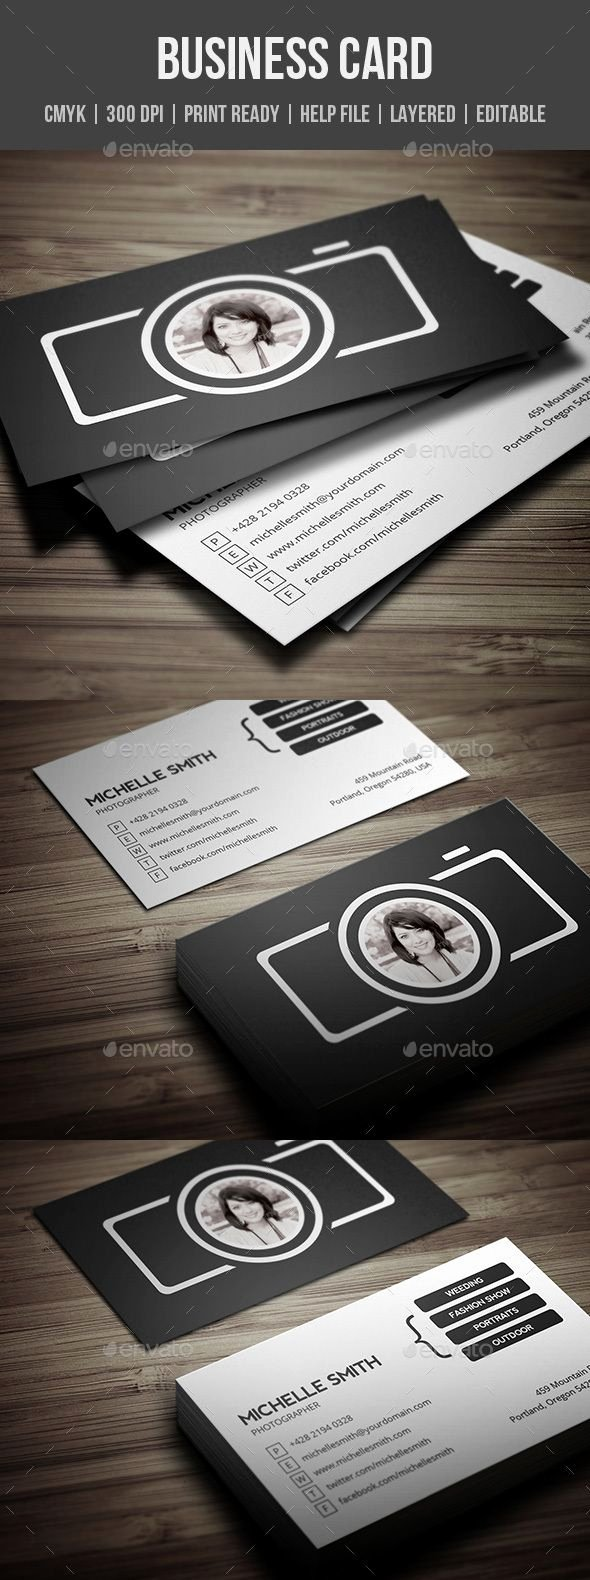 Photography Business Plan Template Inspirational 25 Best Ideas About Grapher Business Cards On